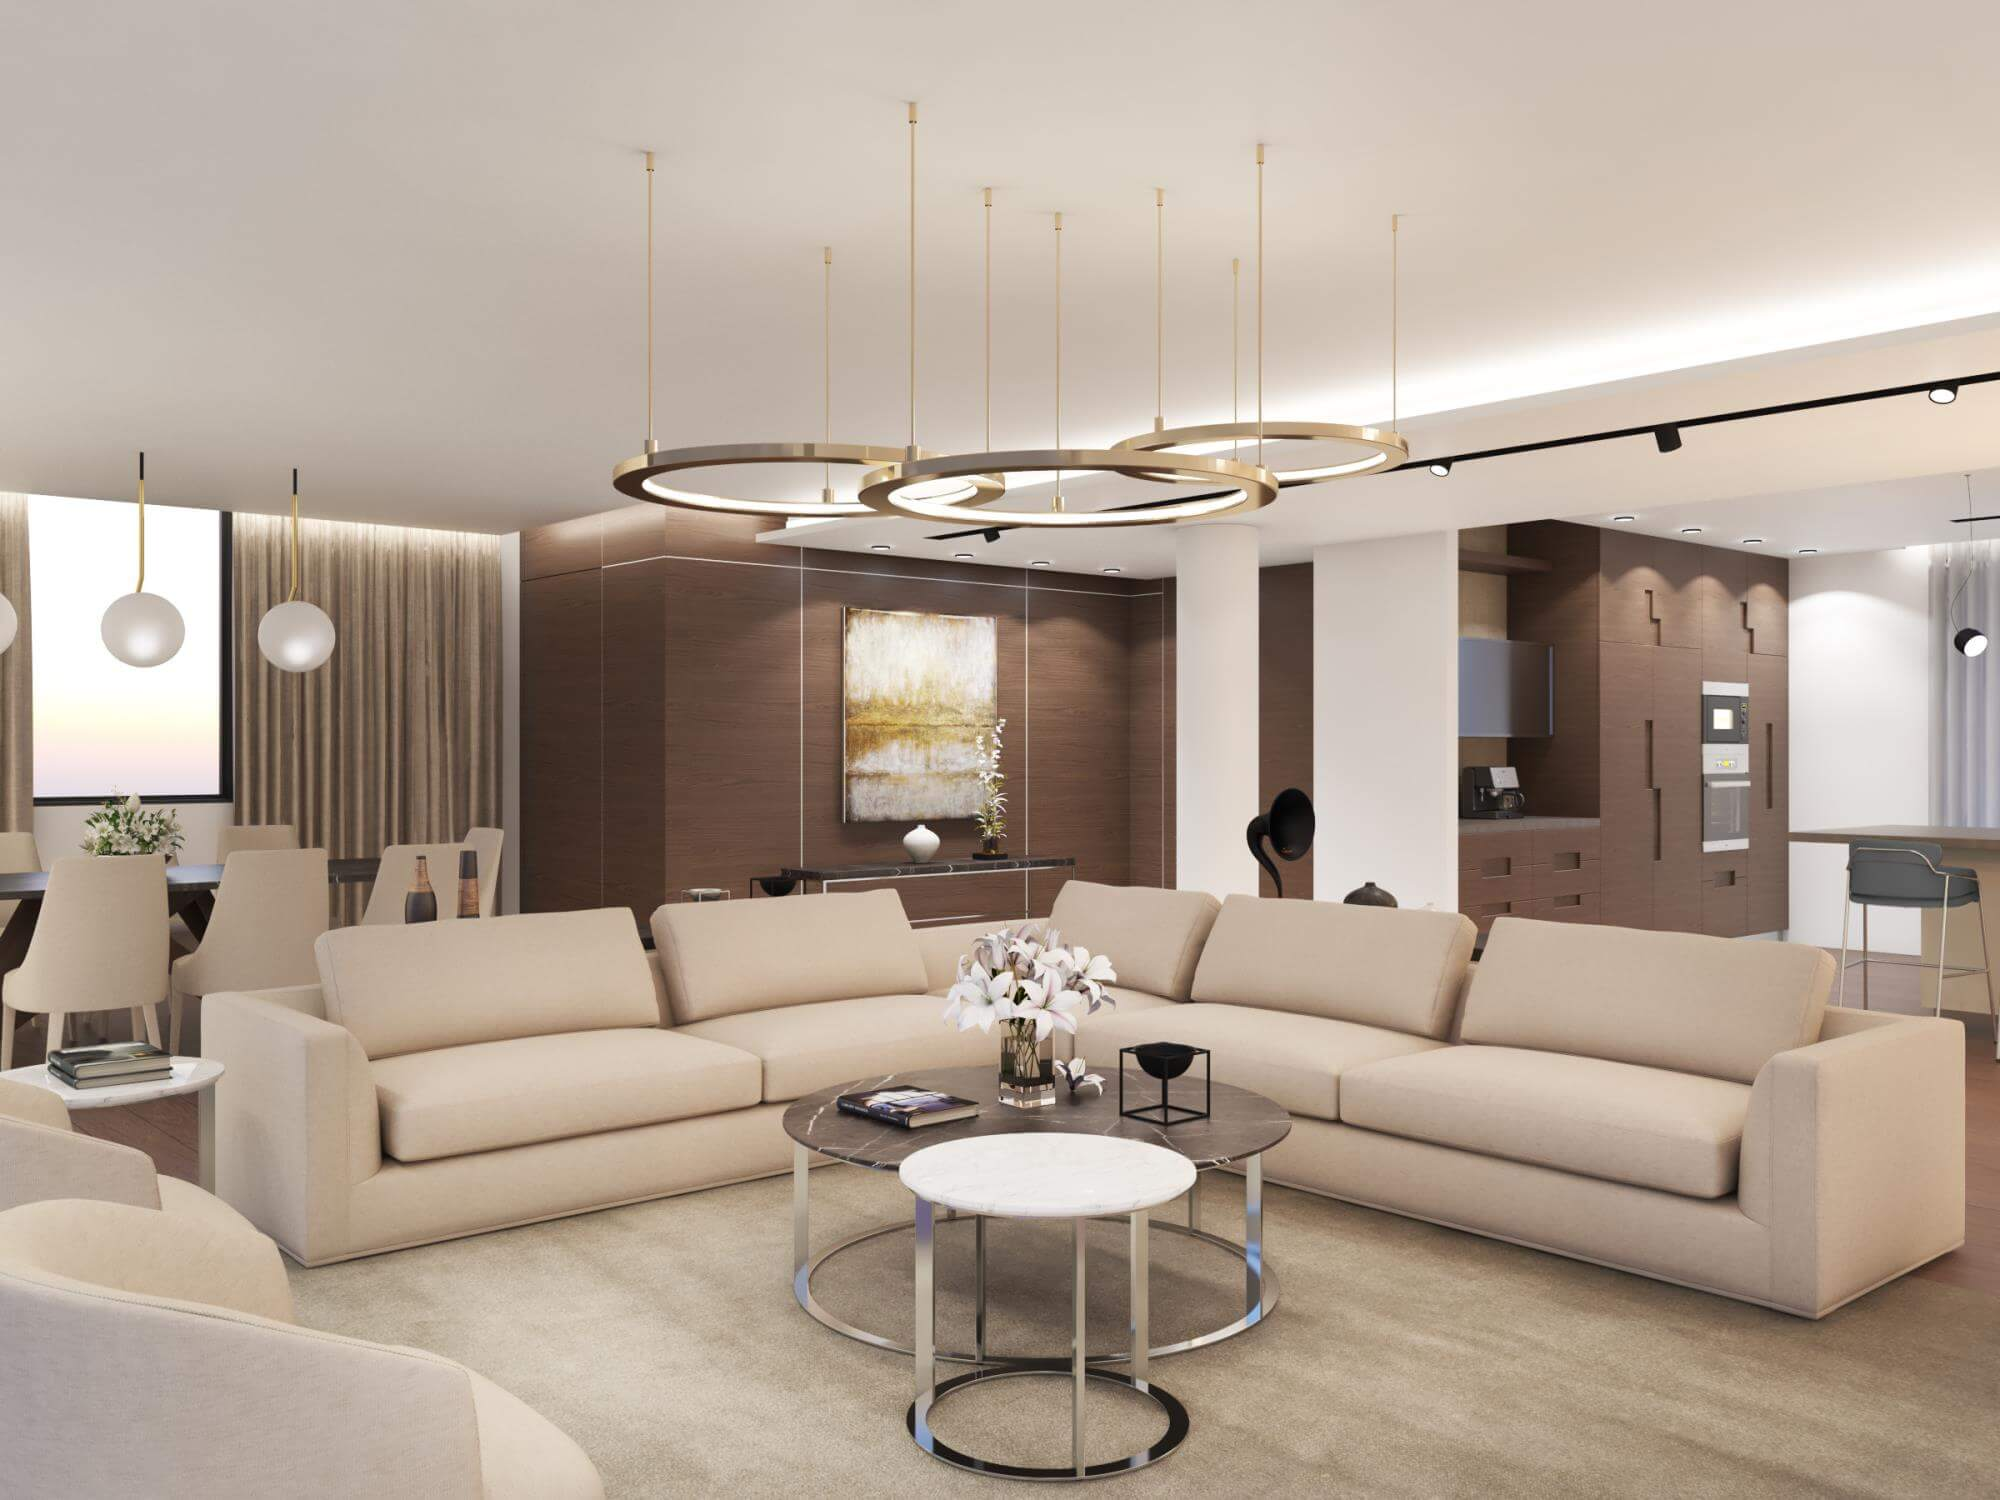 Living room in earth colours and wood materials